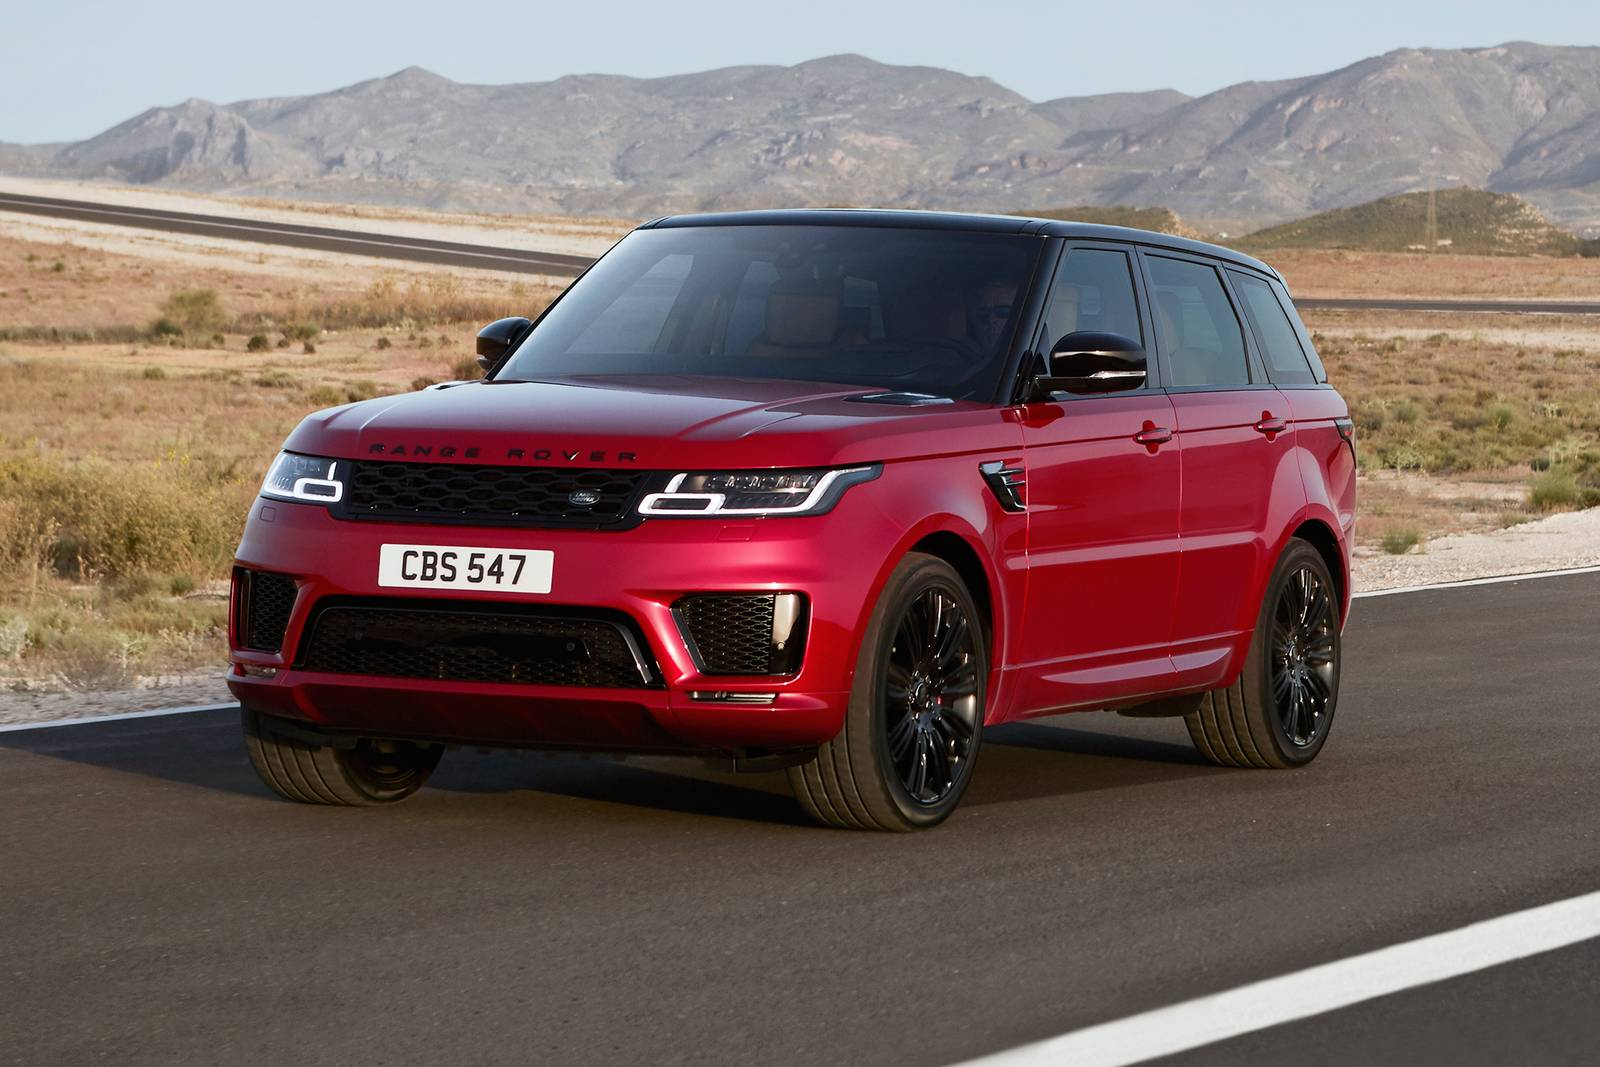 2018 land rover range rover sport 4dr suv autobiography dynamic fq oem 1 1600